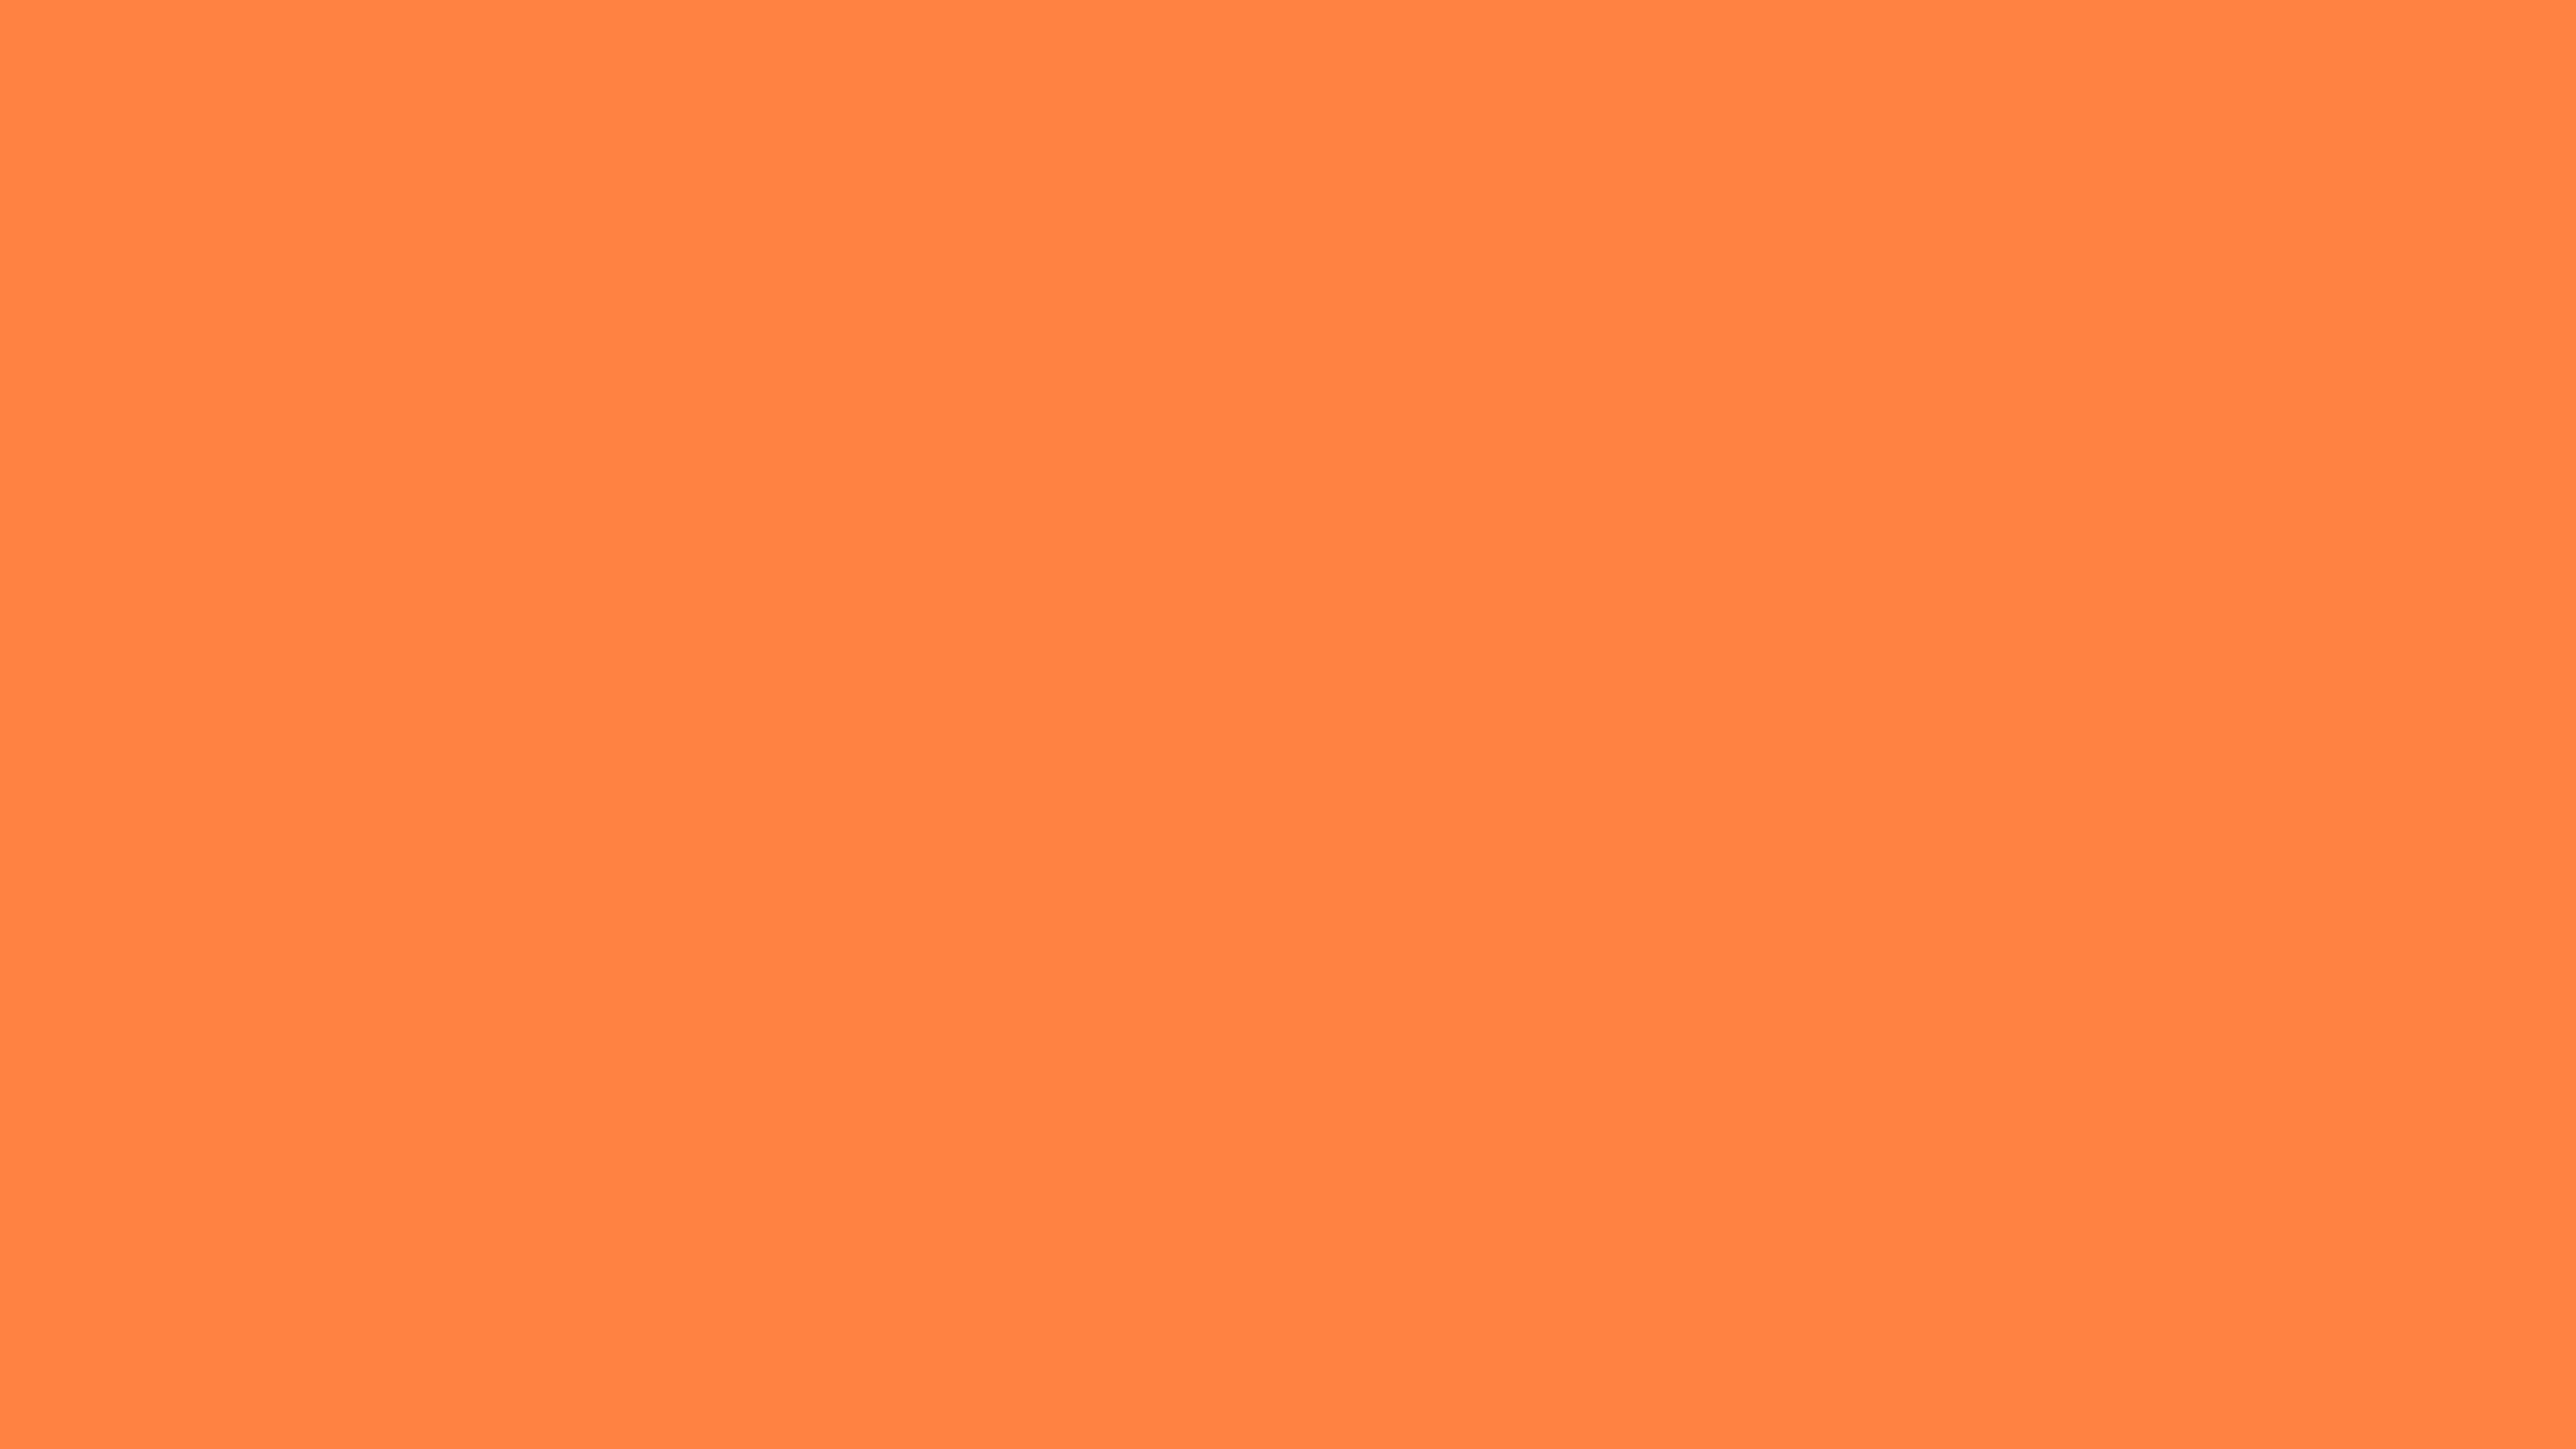 7680x4320 Mango Tango Solid Color Background